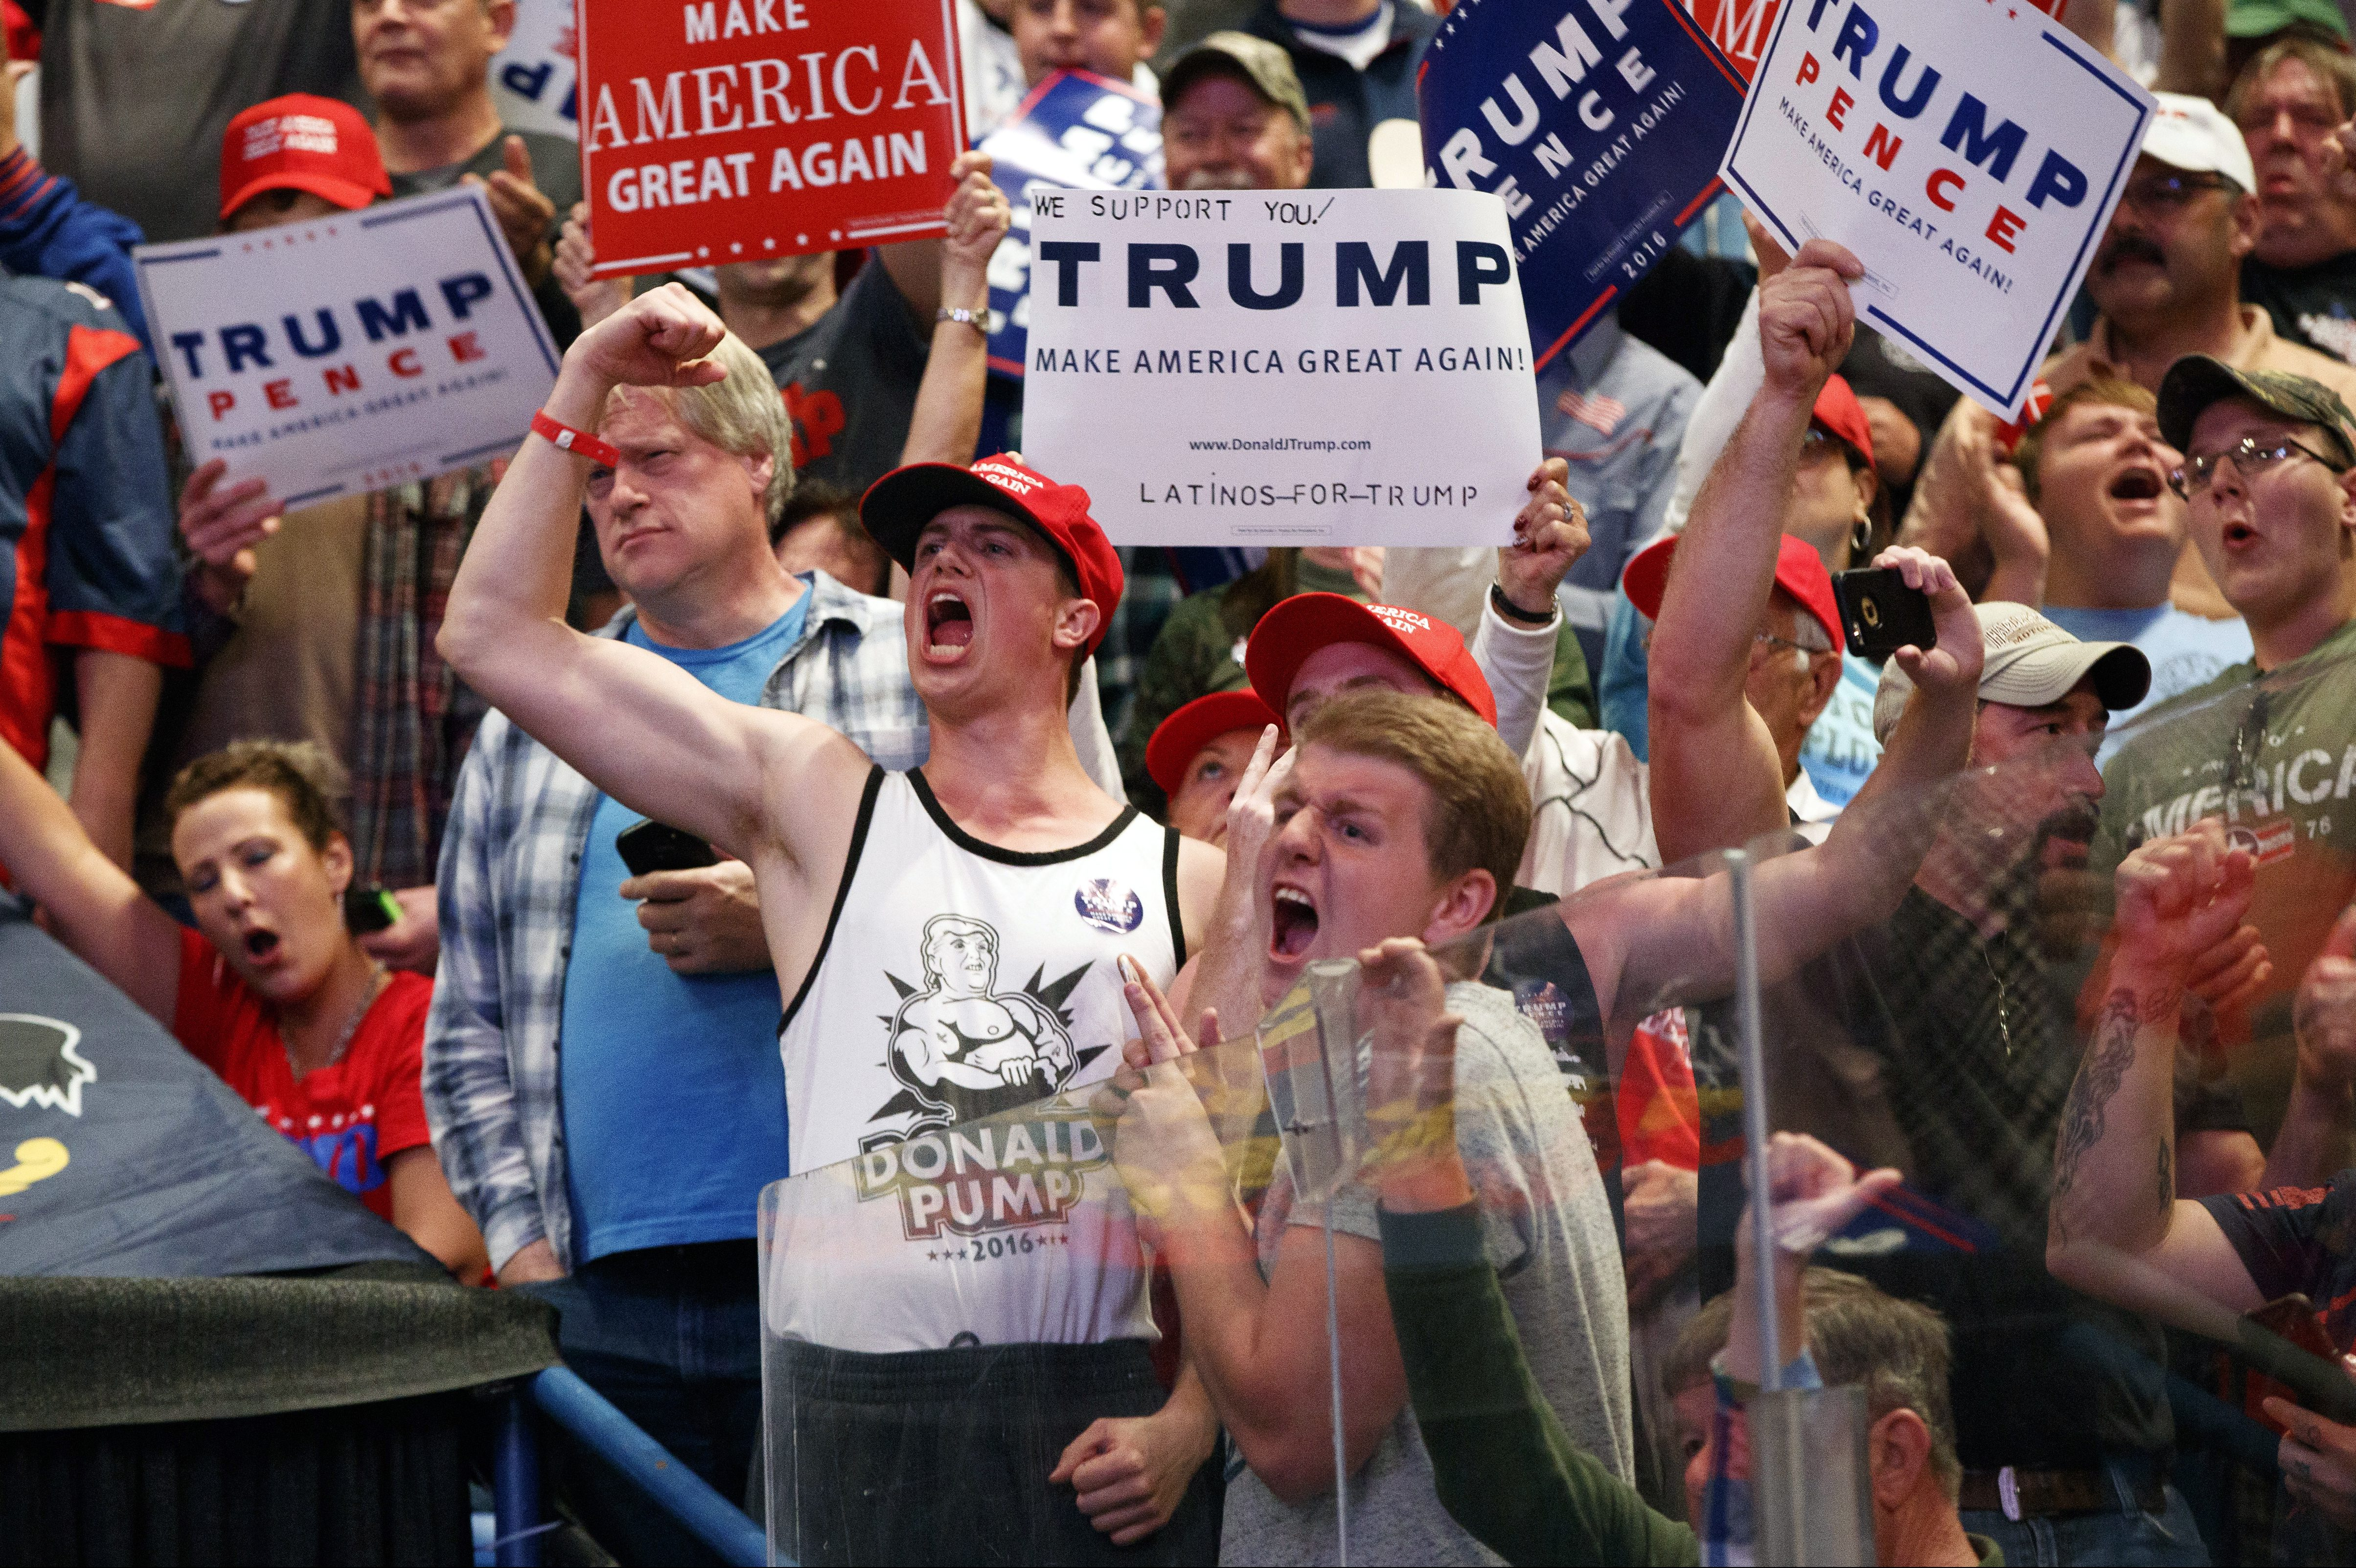 Supporters cheer for Republican presidential candidate Donald Trump cheer during a rally, Monday, Oct. 10, 2016, in Wilkes-Barre, Pa.